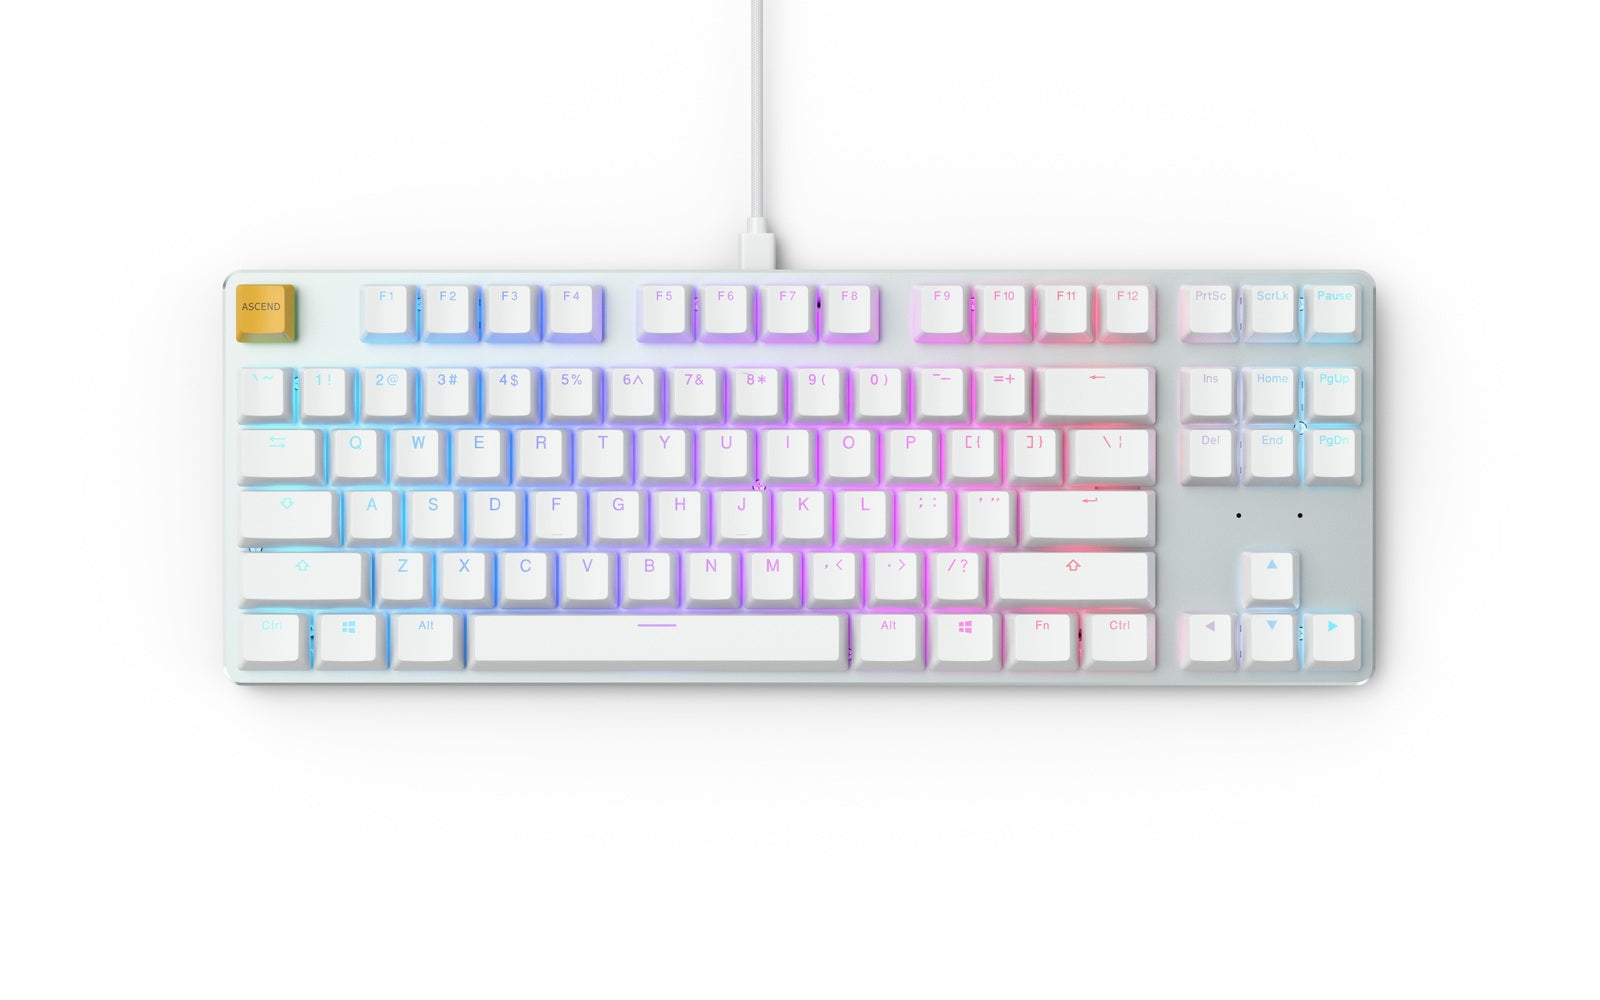 Glorious PC Gaming GMMK TKL Mechanical Keyboard (White) (USA - Prebuilt) - PC Games